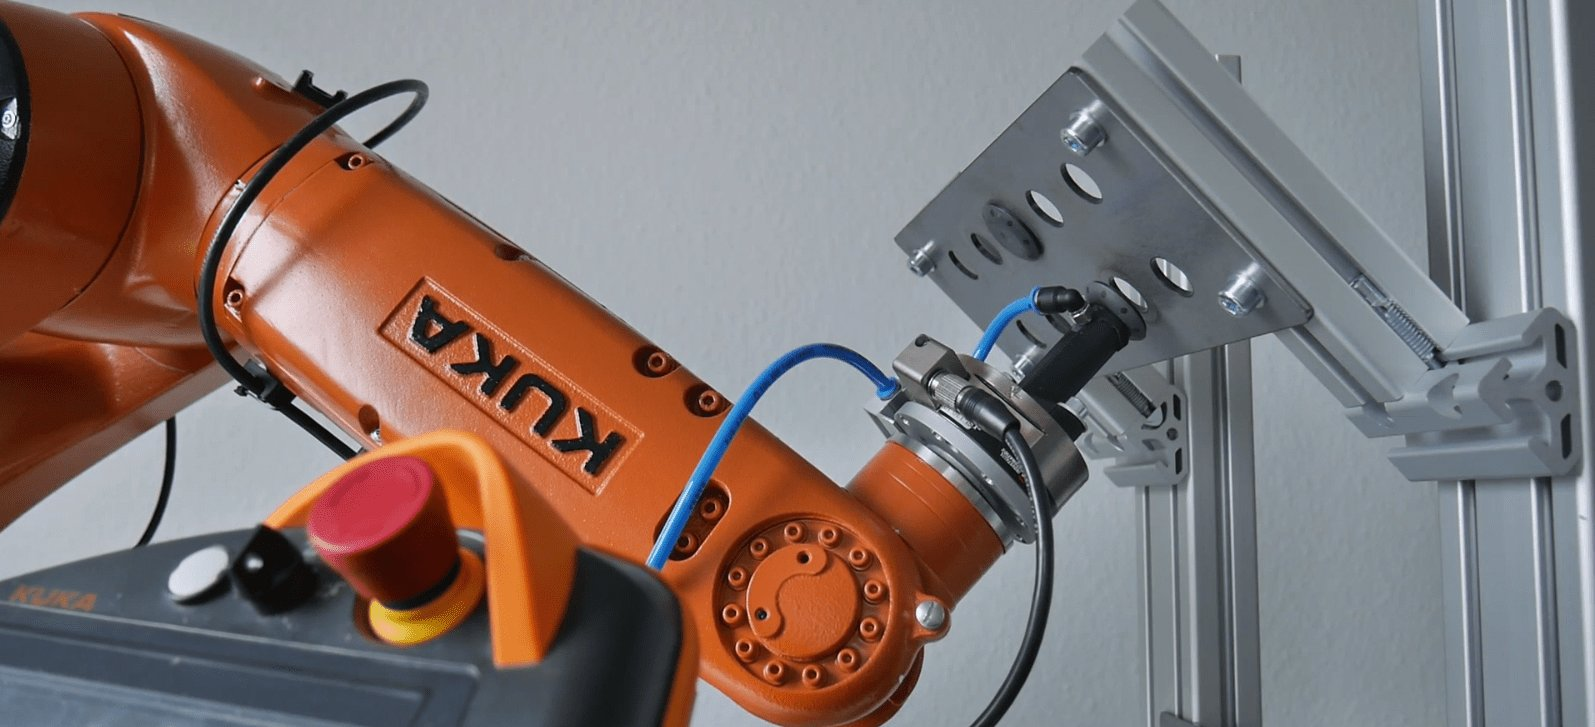 ArtiMinds Robotics - Efficient programming and teaching of robots with ArtiMinds RPS